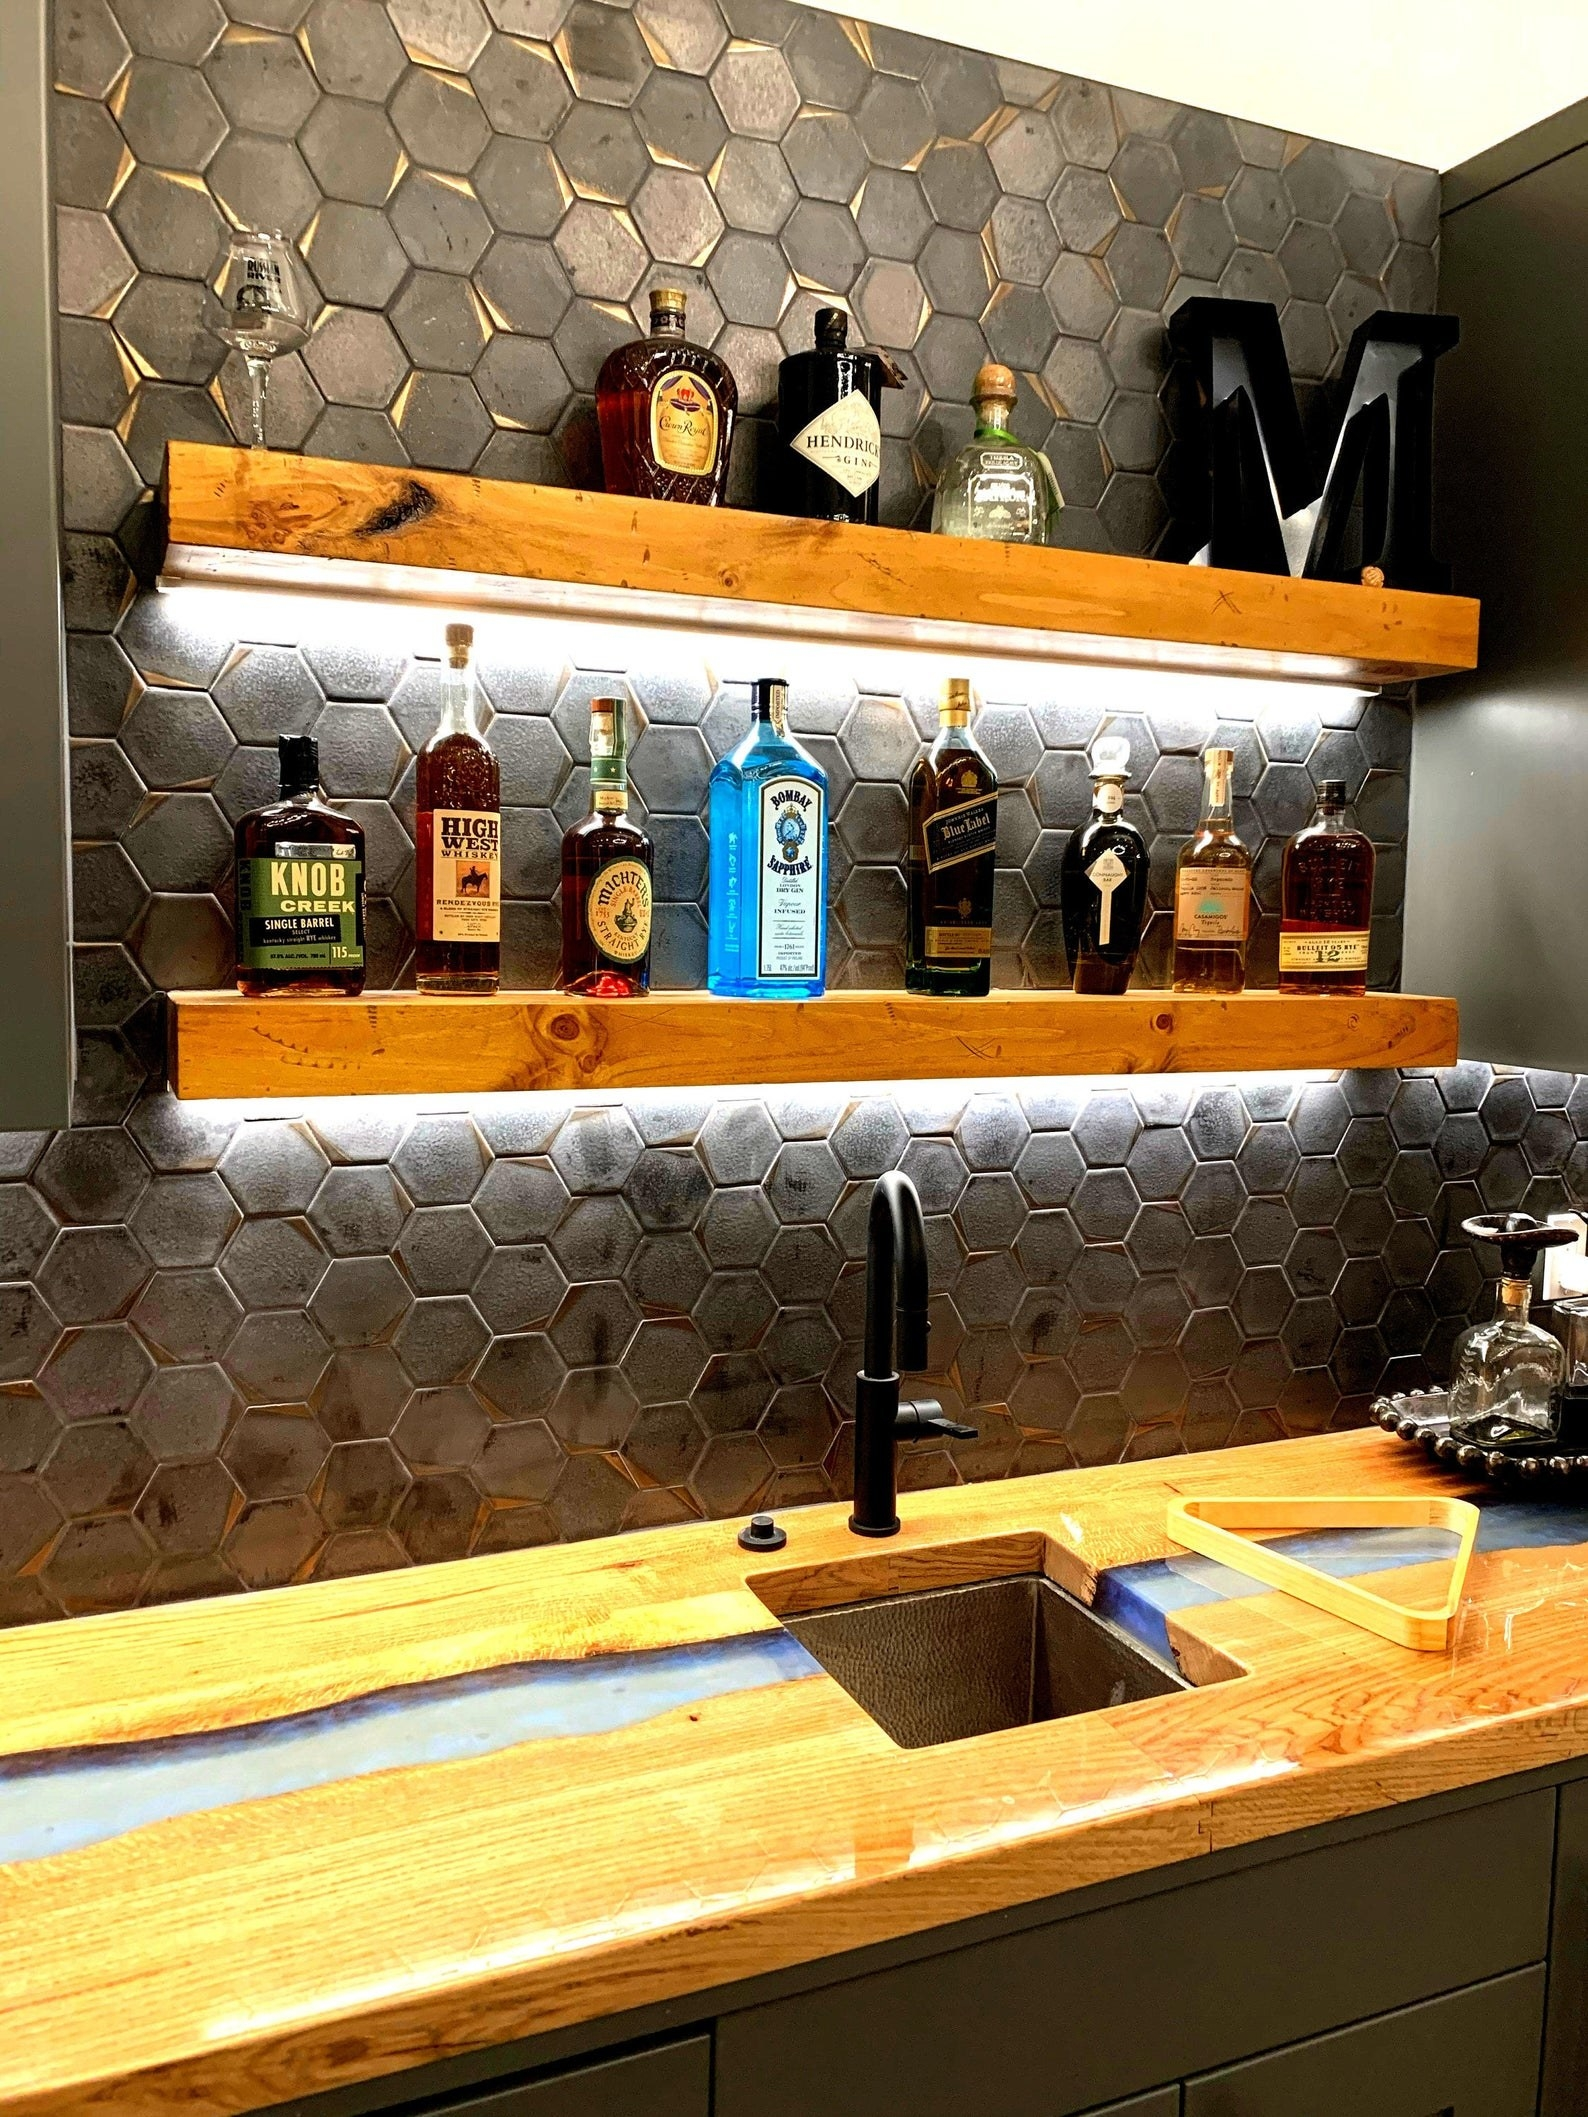 the floating shelves with alcohol bottles